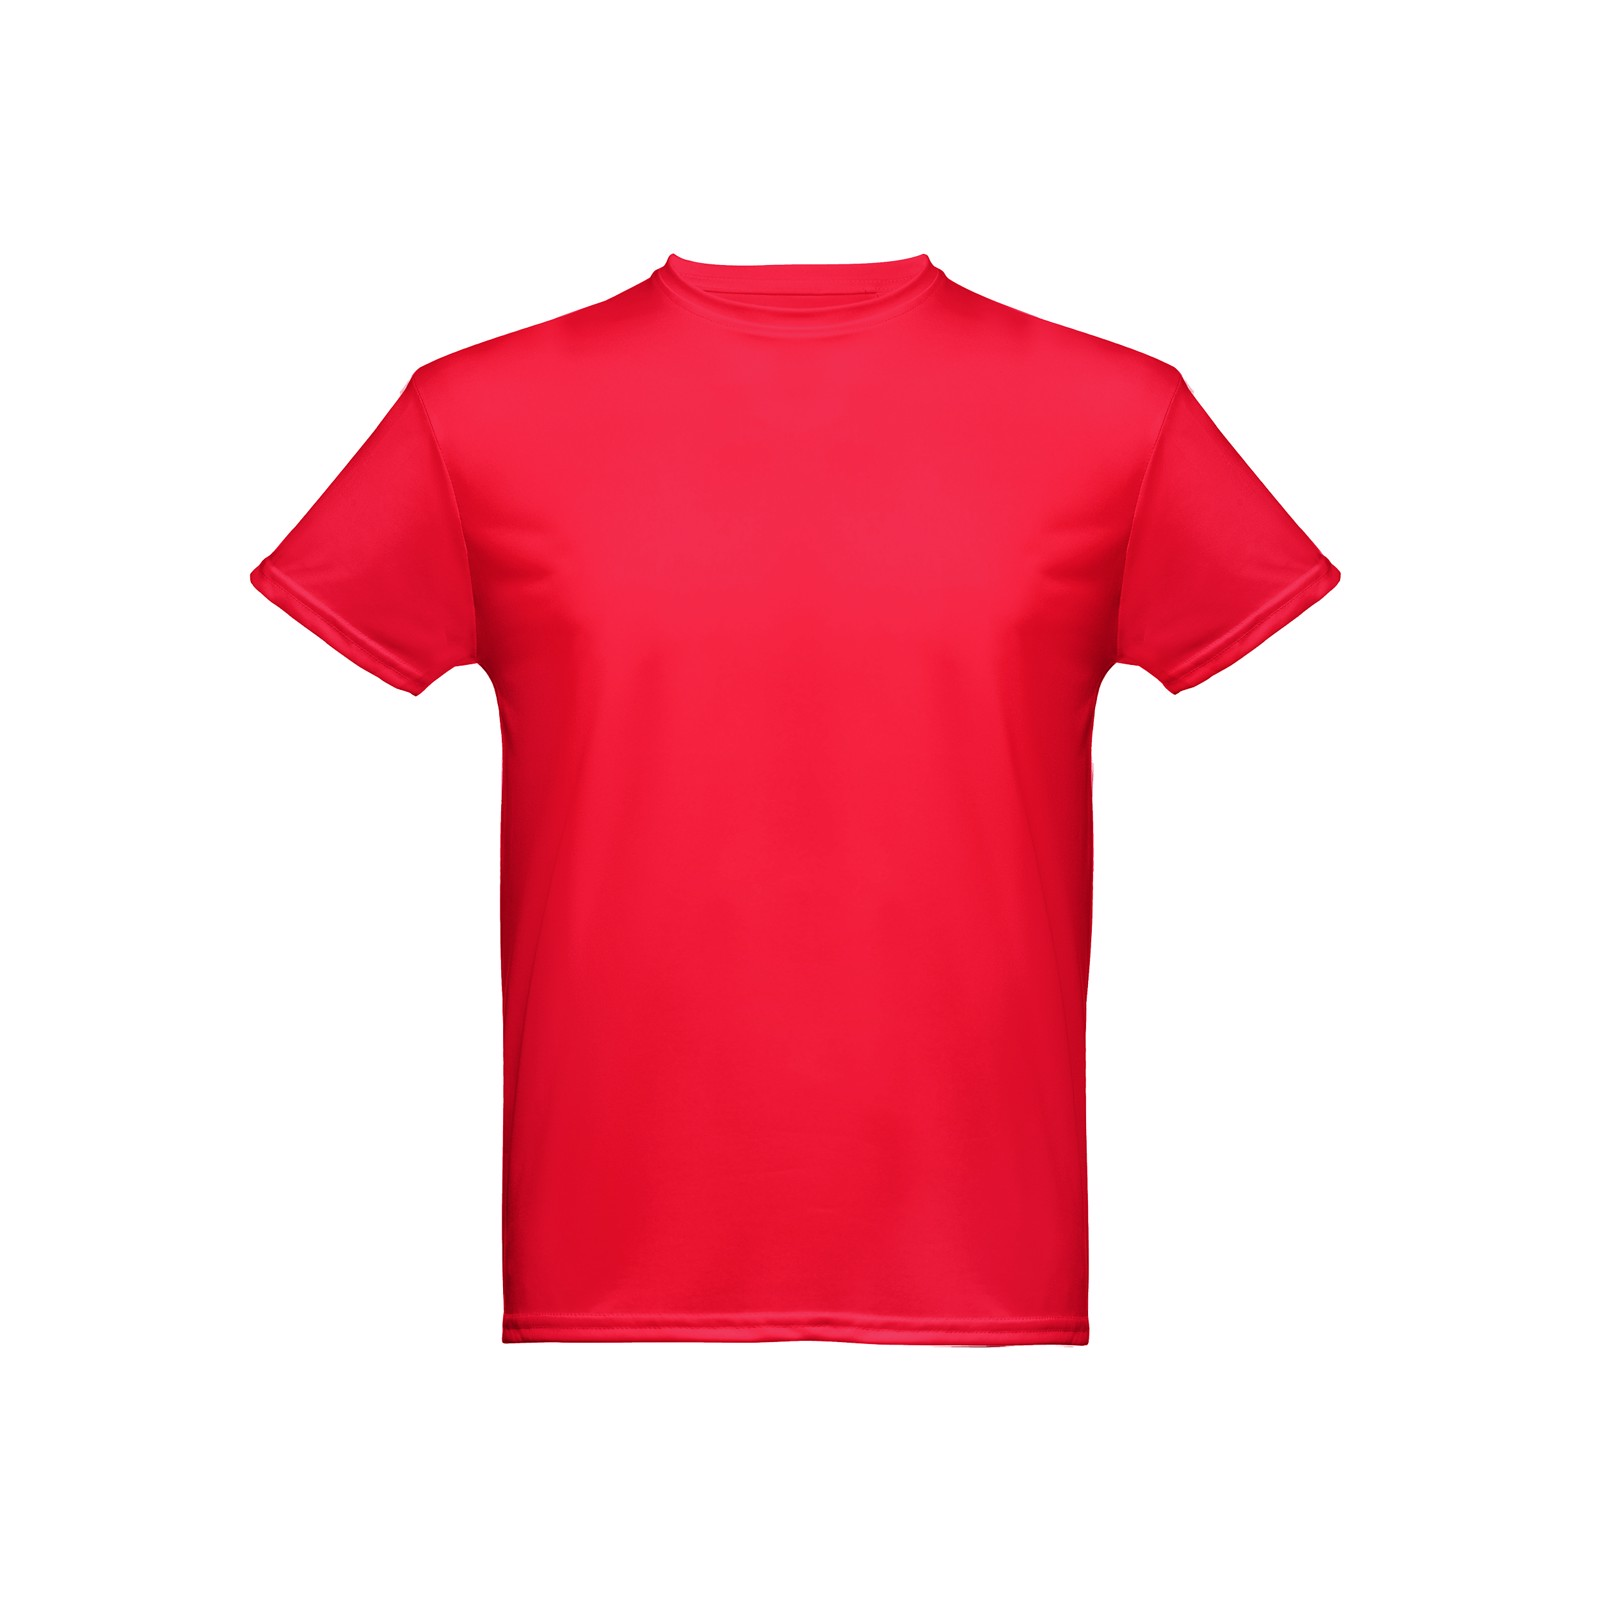 NICOSIA. Men's sports t-shirt - Red / XL